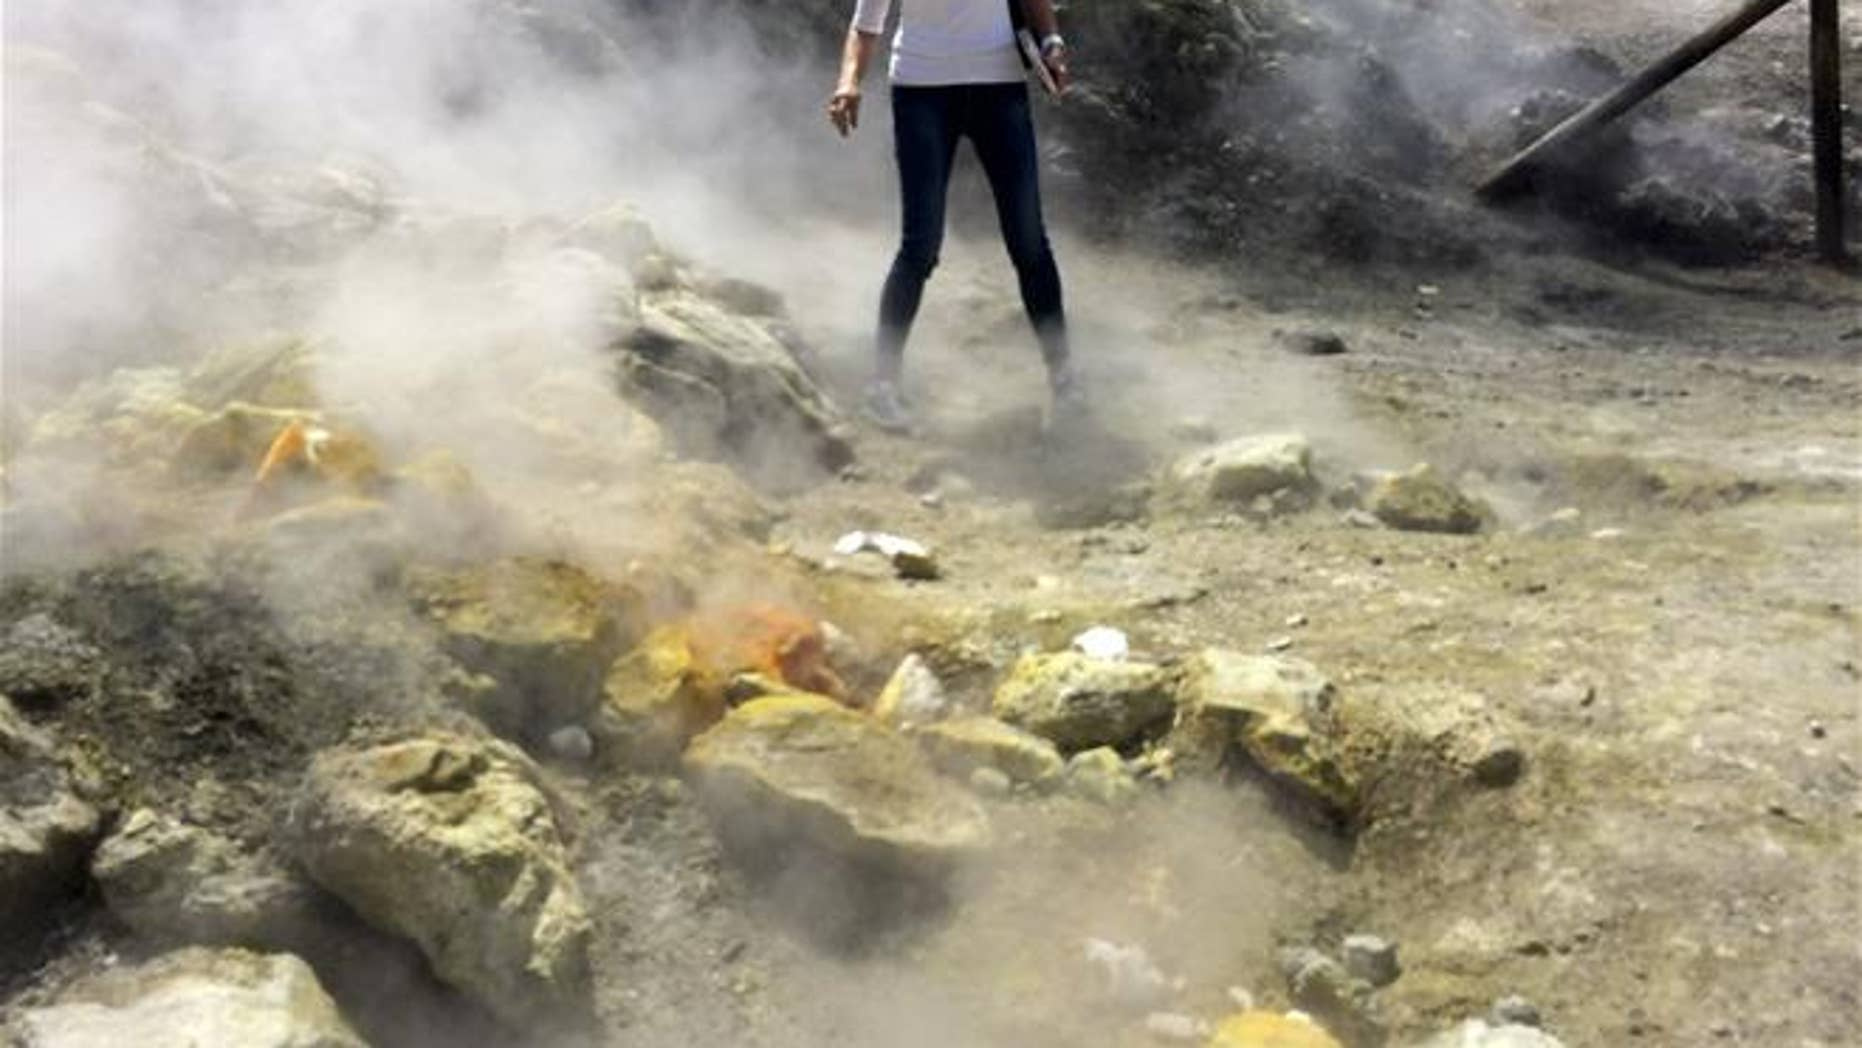 A woman takes a close look at a steaming fumarola at the Solfatara crater bed in Italy's Campi Flegrei last April.   (AP Photo/Frances D'Emilio)